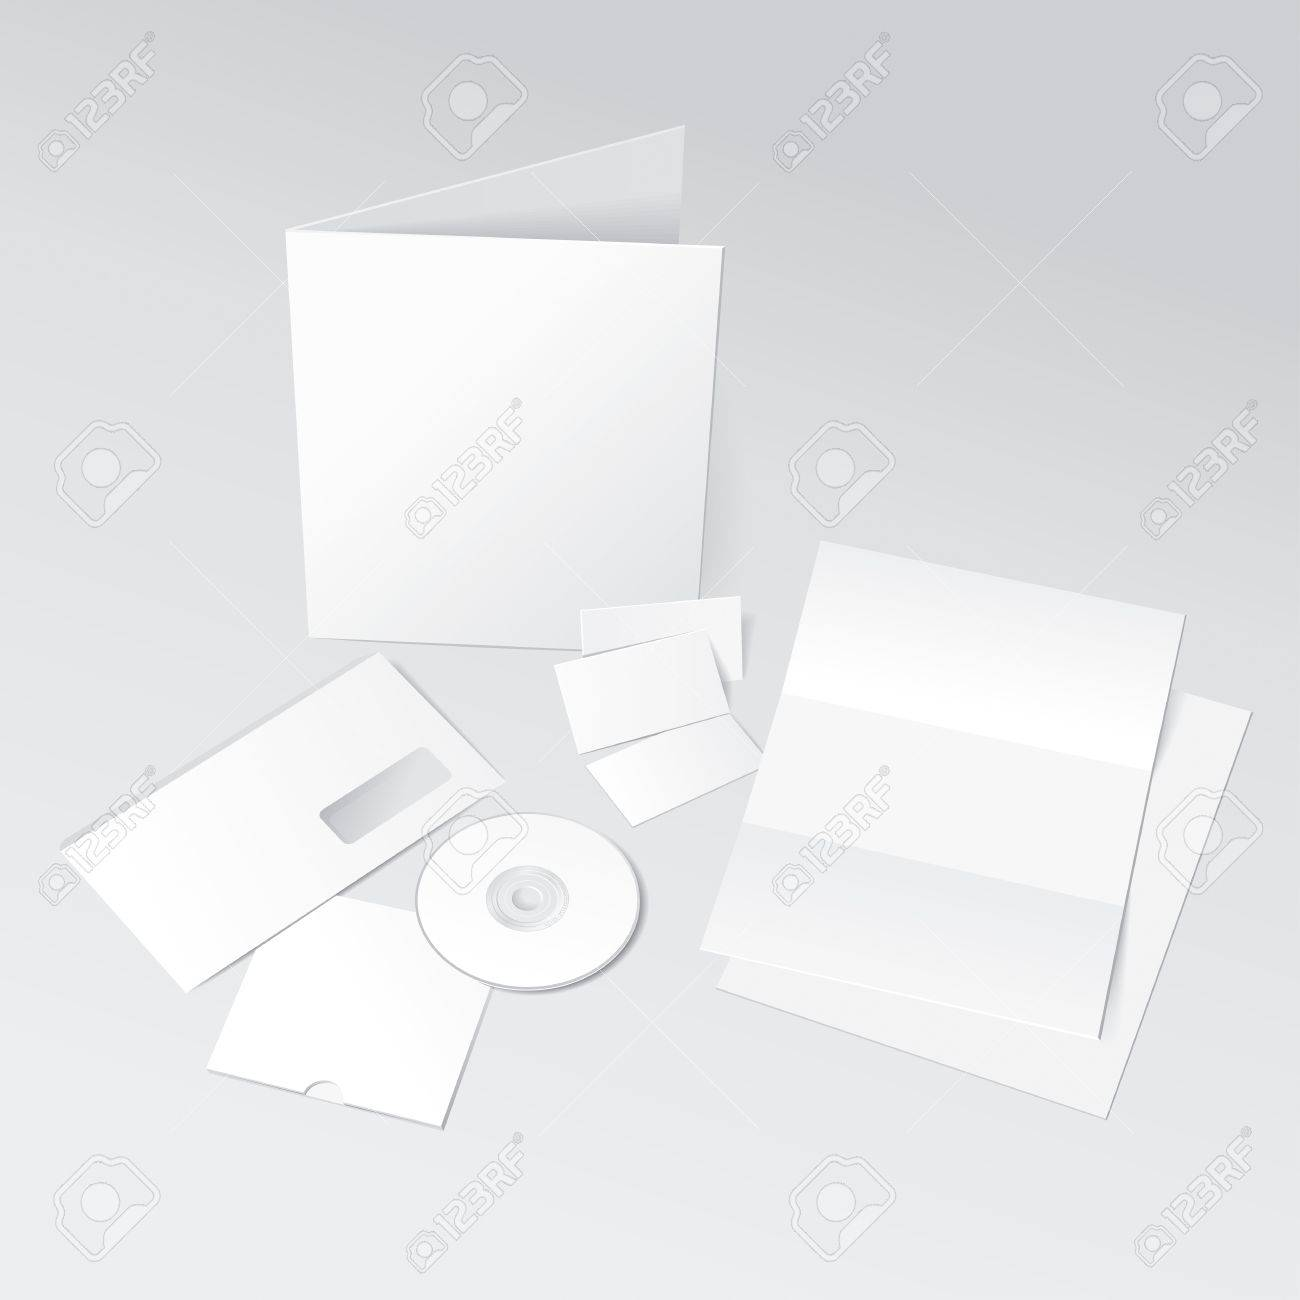 Blank Letter, Envelope, Business cards, CD and Folder template. Vector Illustration Stock Vector - 12171210